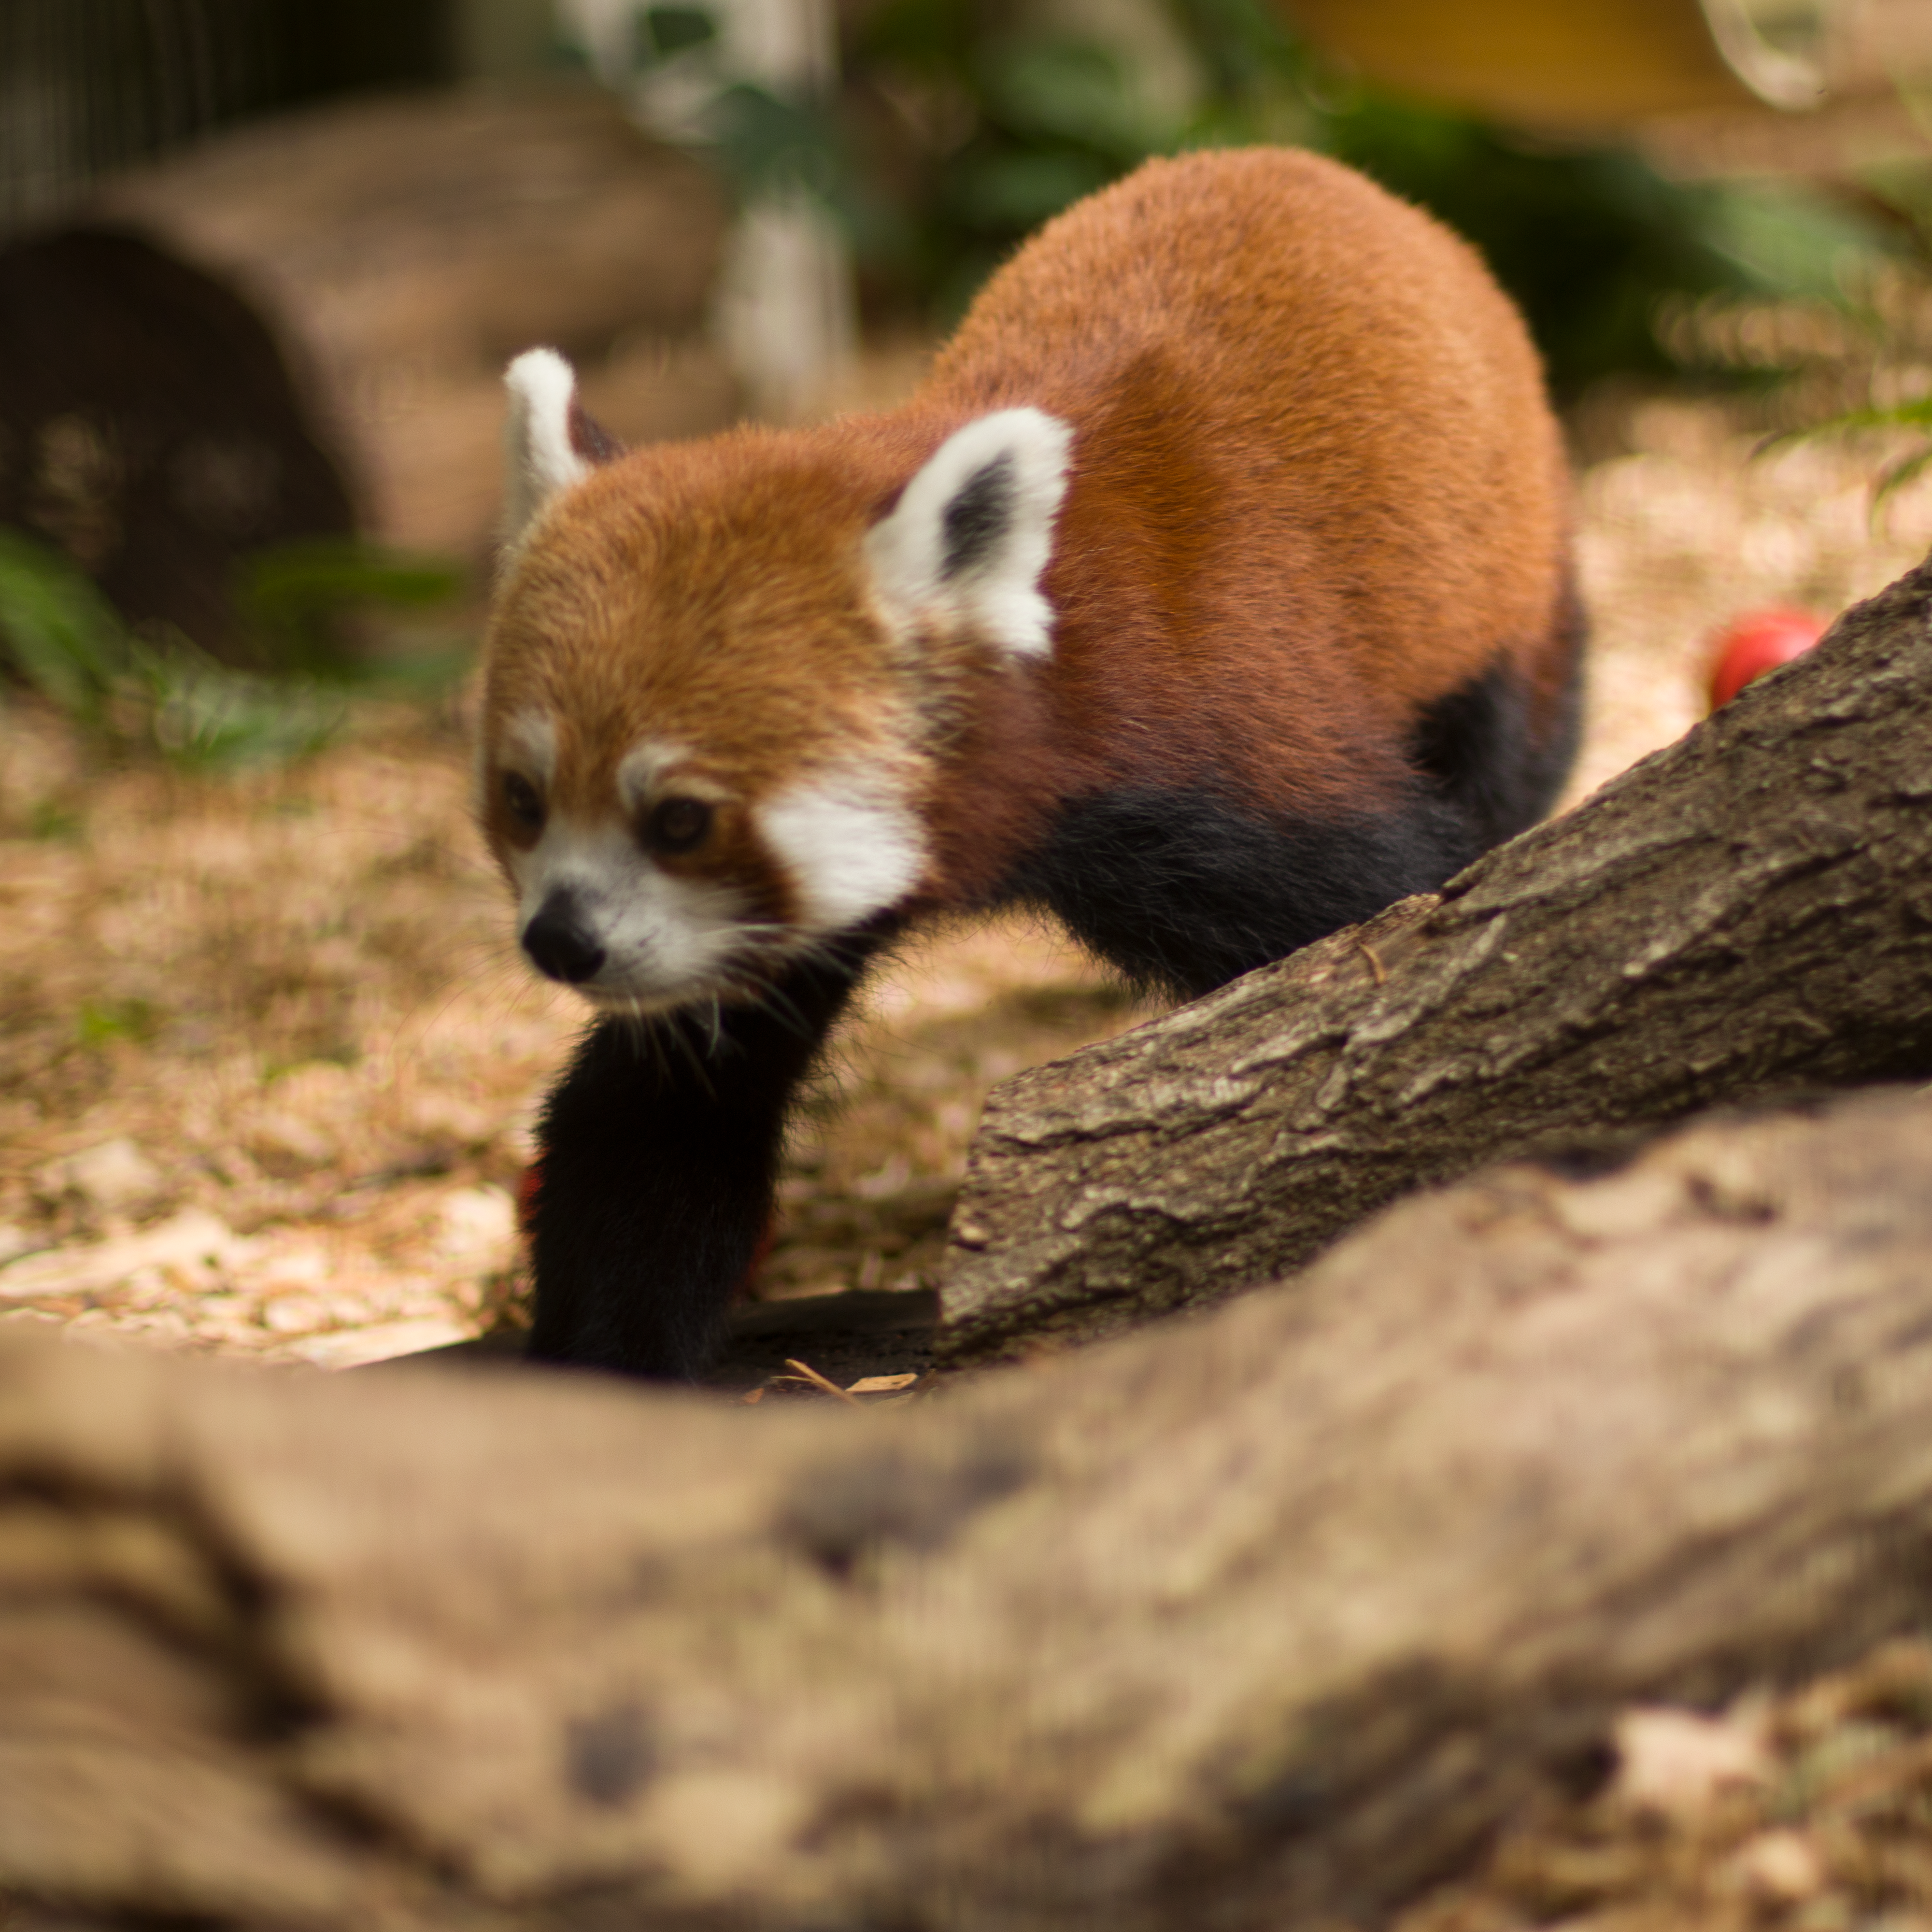 Tink the Red Panda